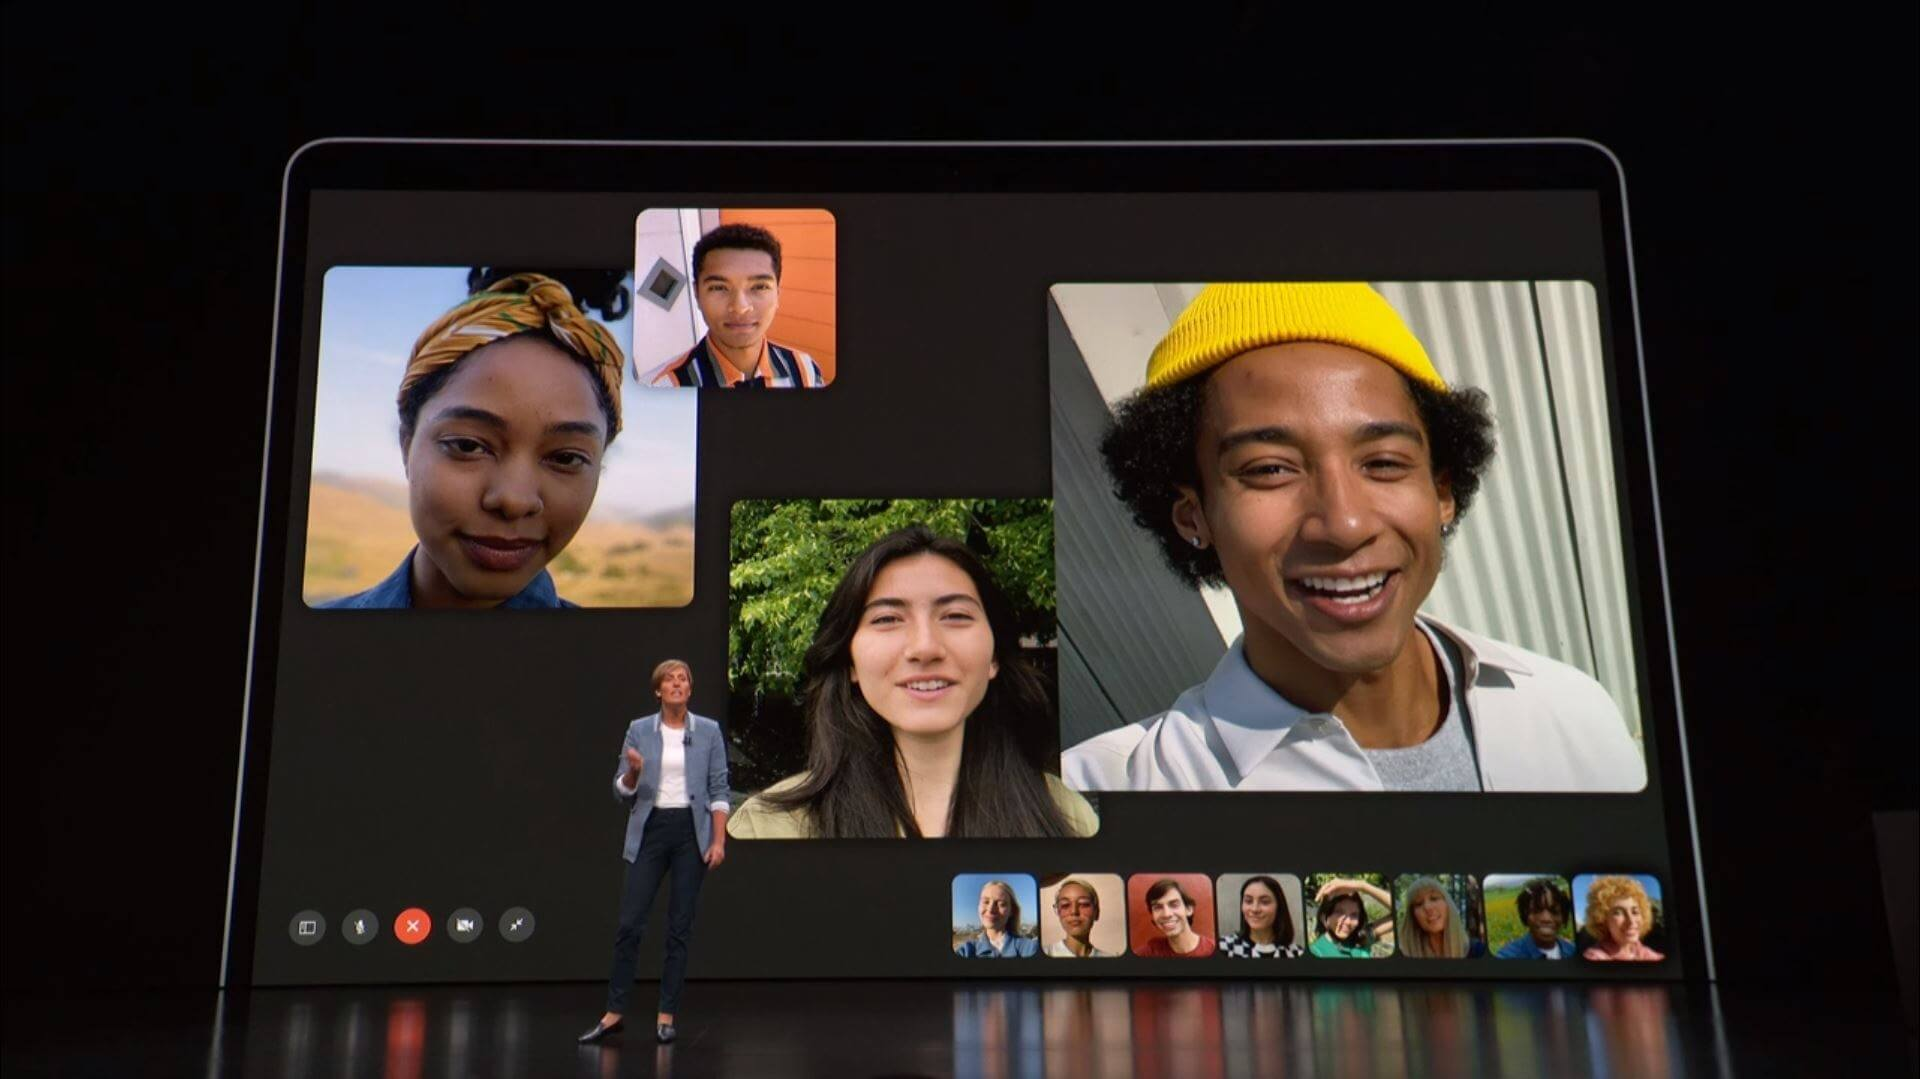 Fixes Group FaceTime privacy bug